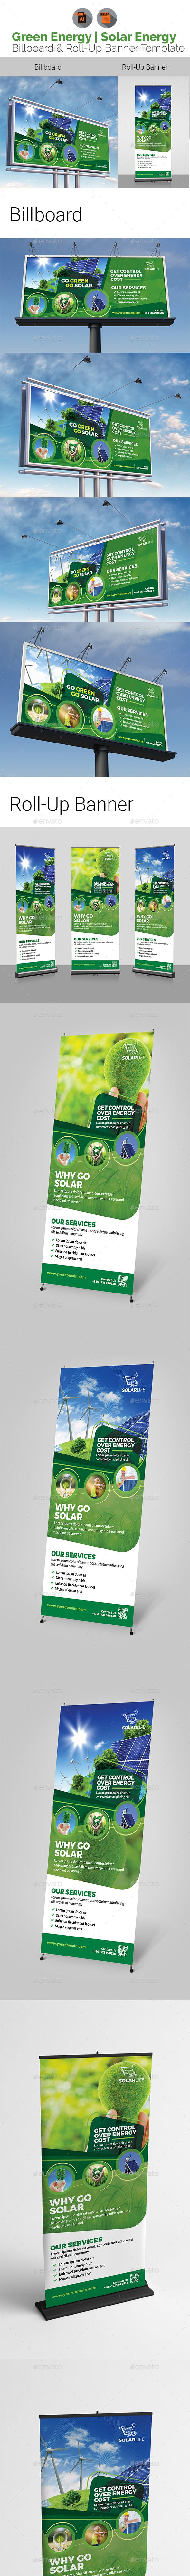 Green Energy Signage Bundle